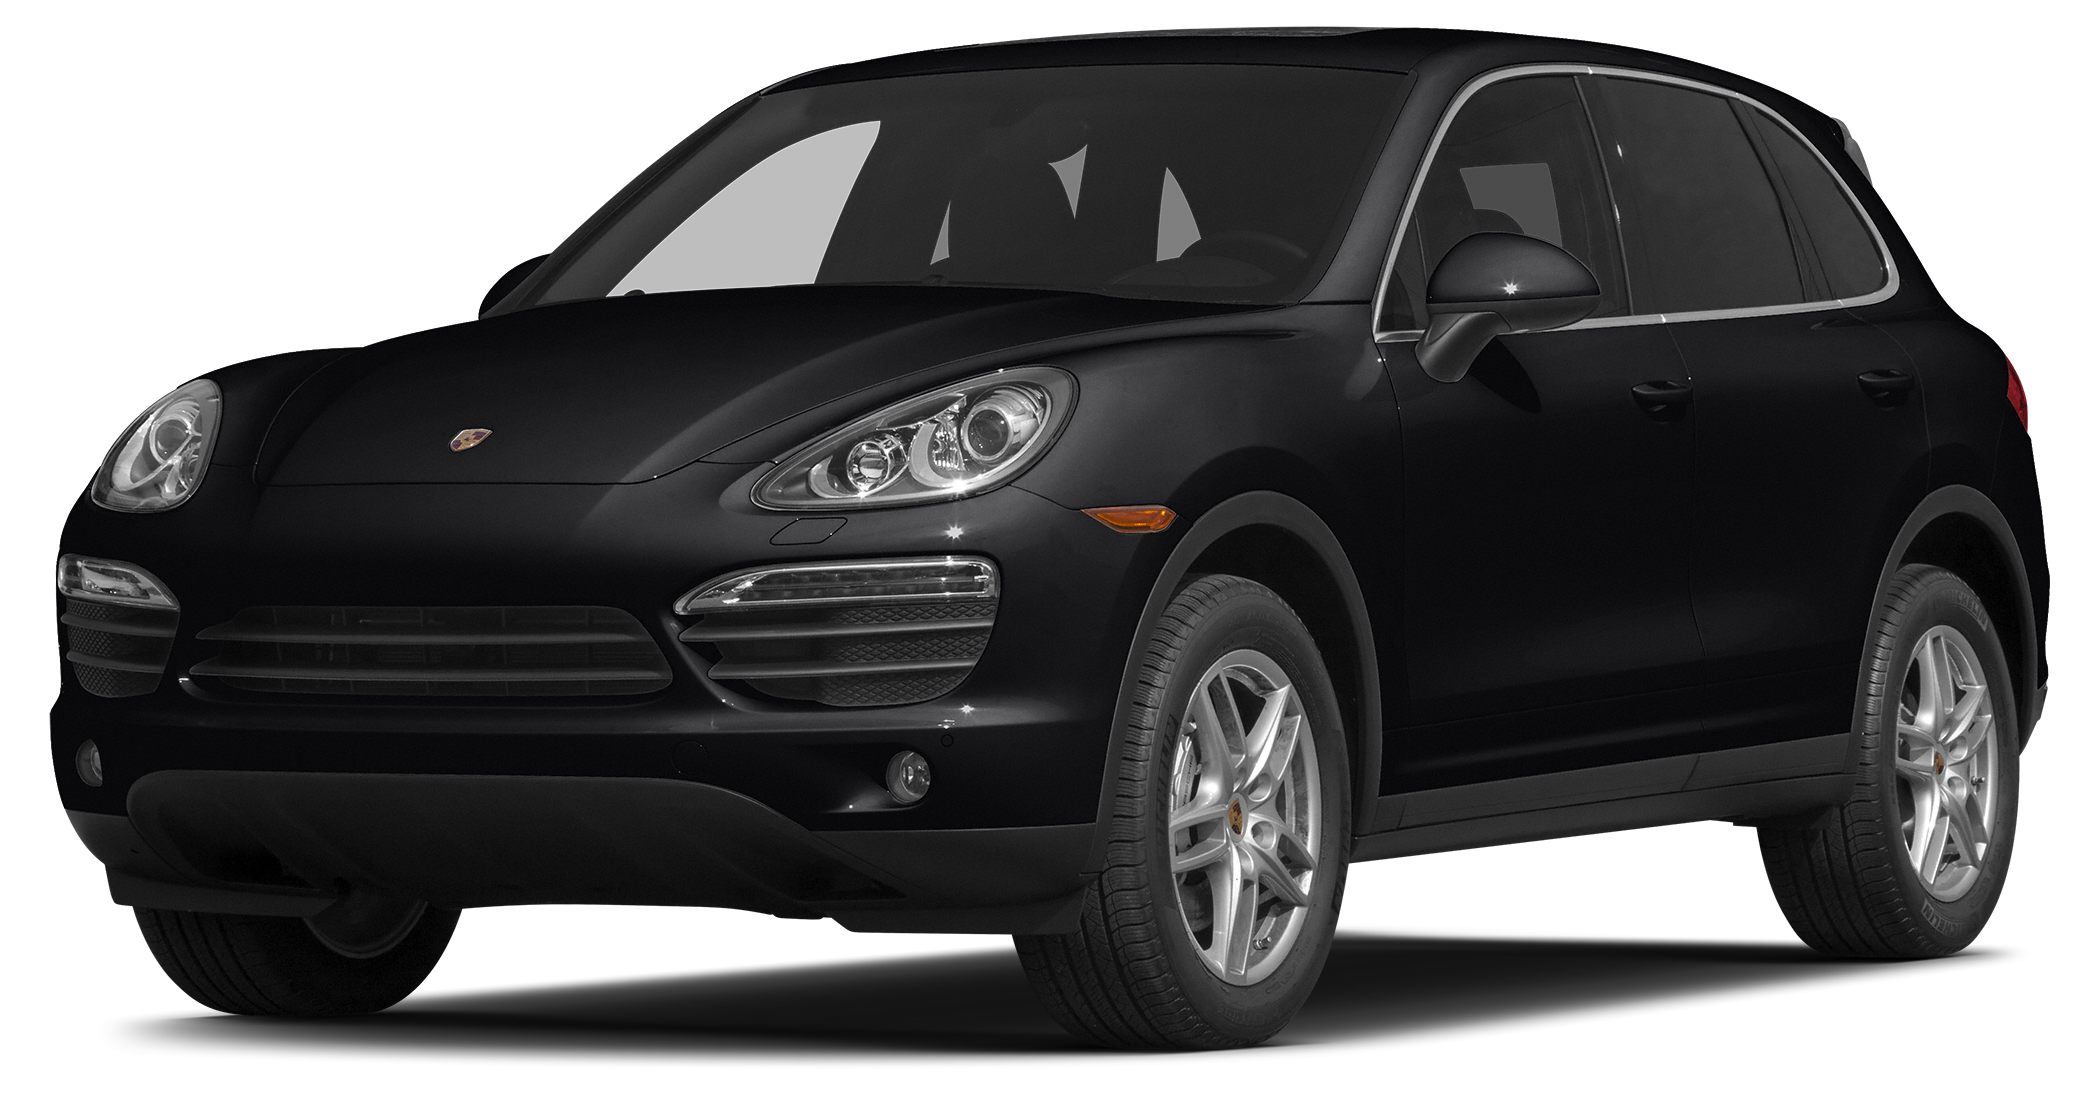 2014 Porsche Cayenne  ACTIVE SUSPENSION NAVIGATION UPGRADED STEREO REAR PARKING AID SCRATCHLES